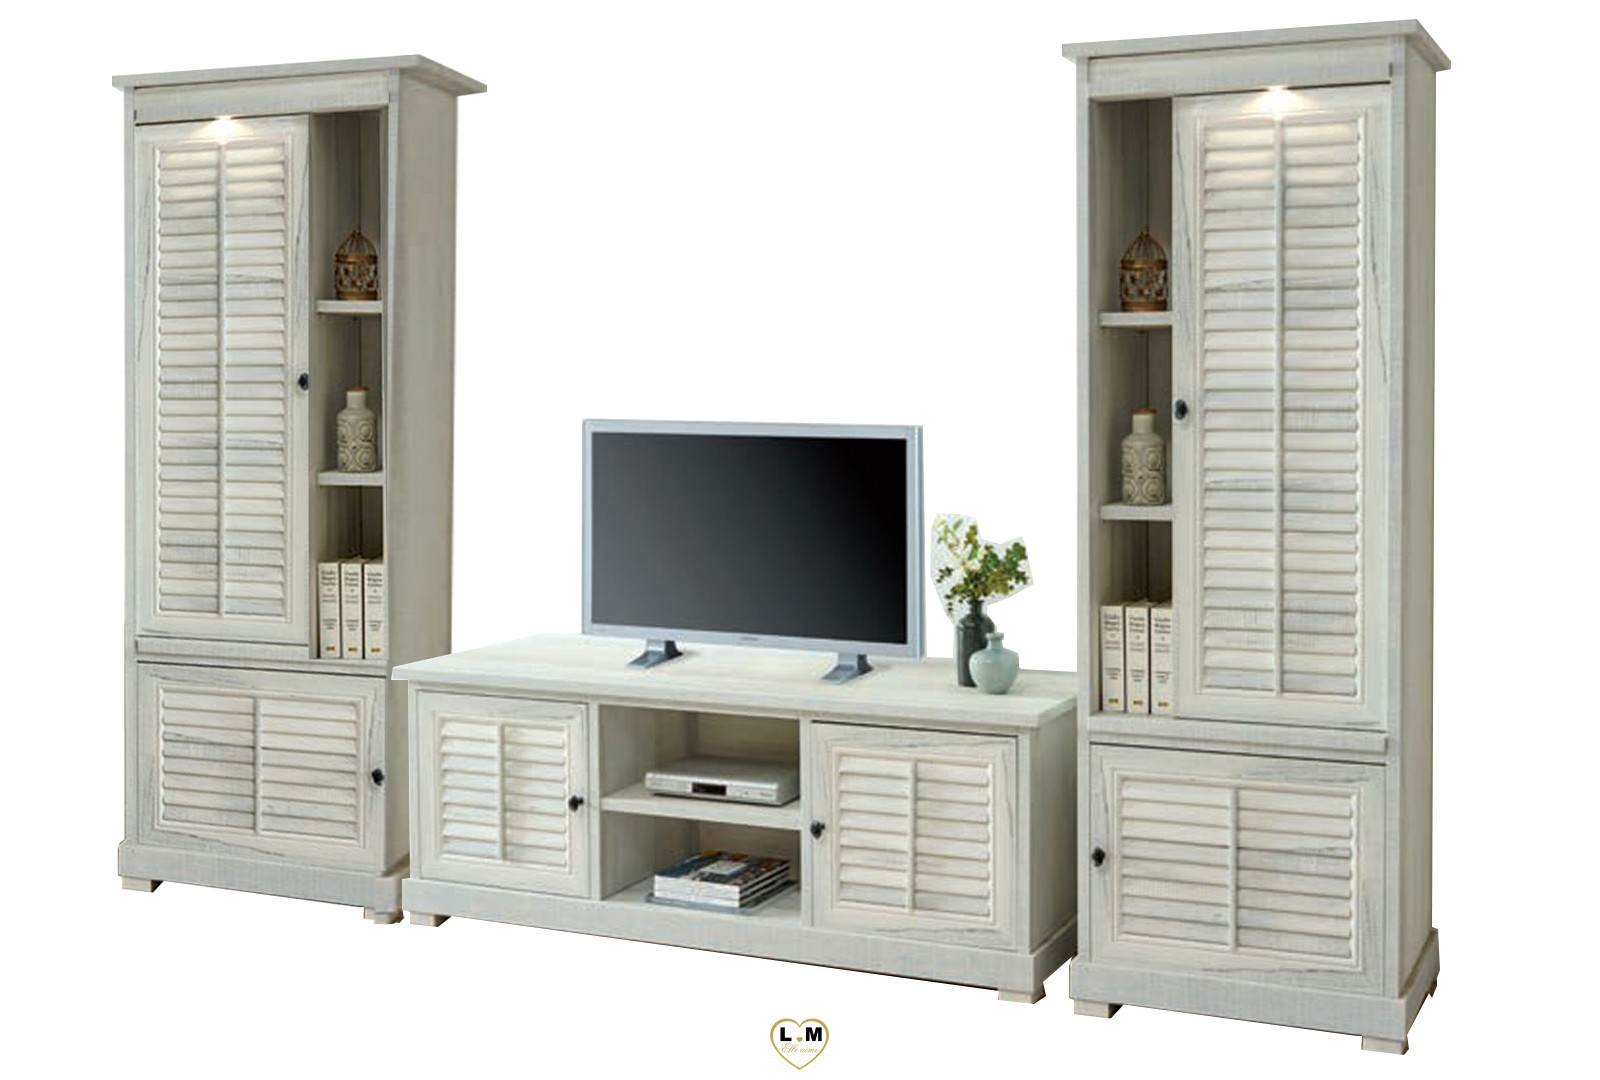 merida bois blanc vieilli sejour salle a manger la. Black Bedroom Furniture Sets. Home Design Ideas